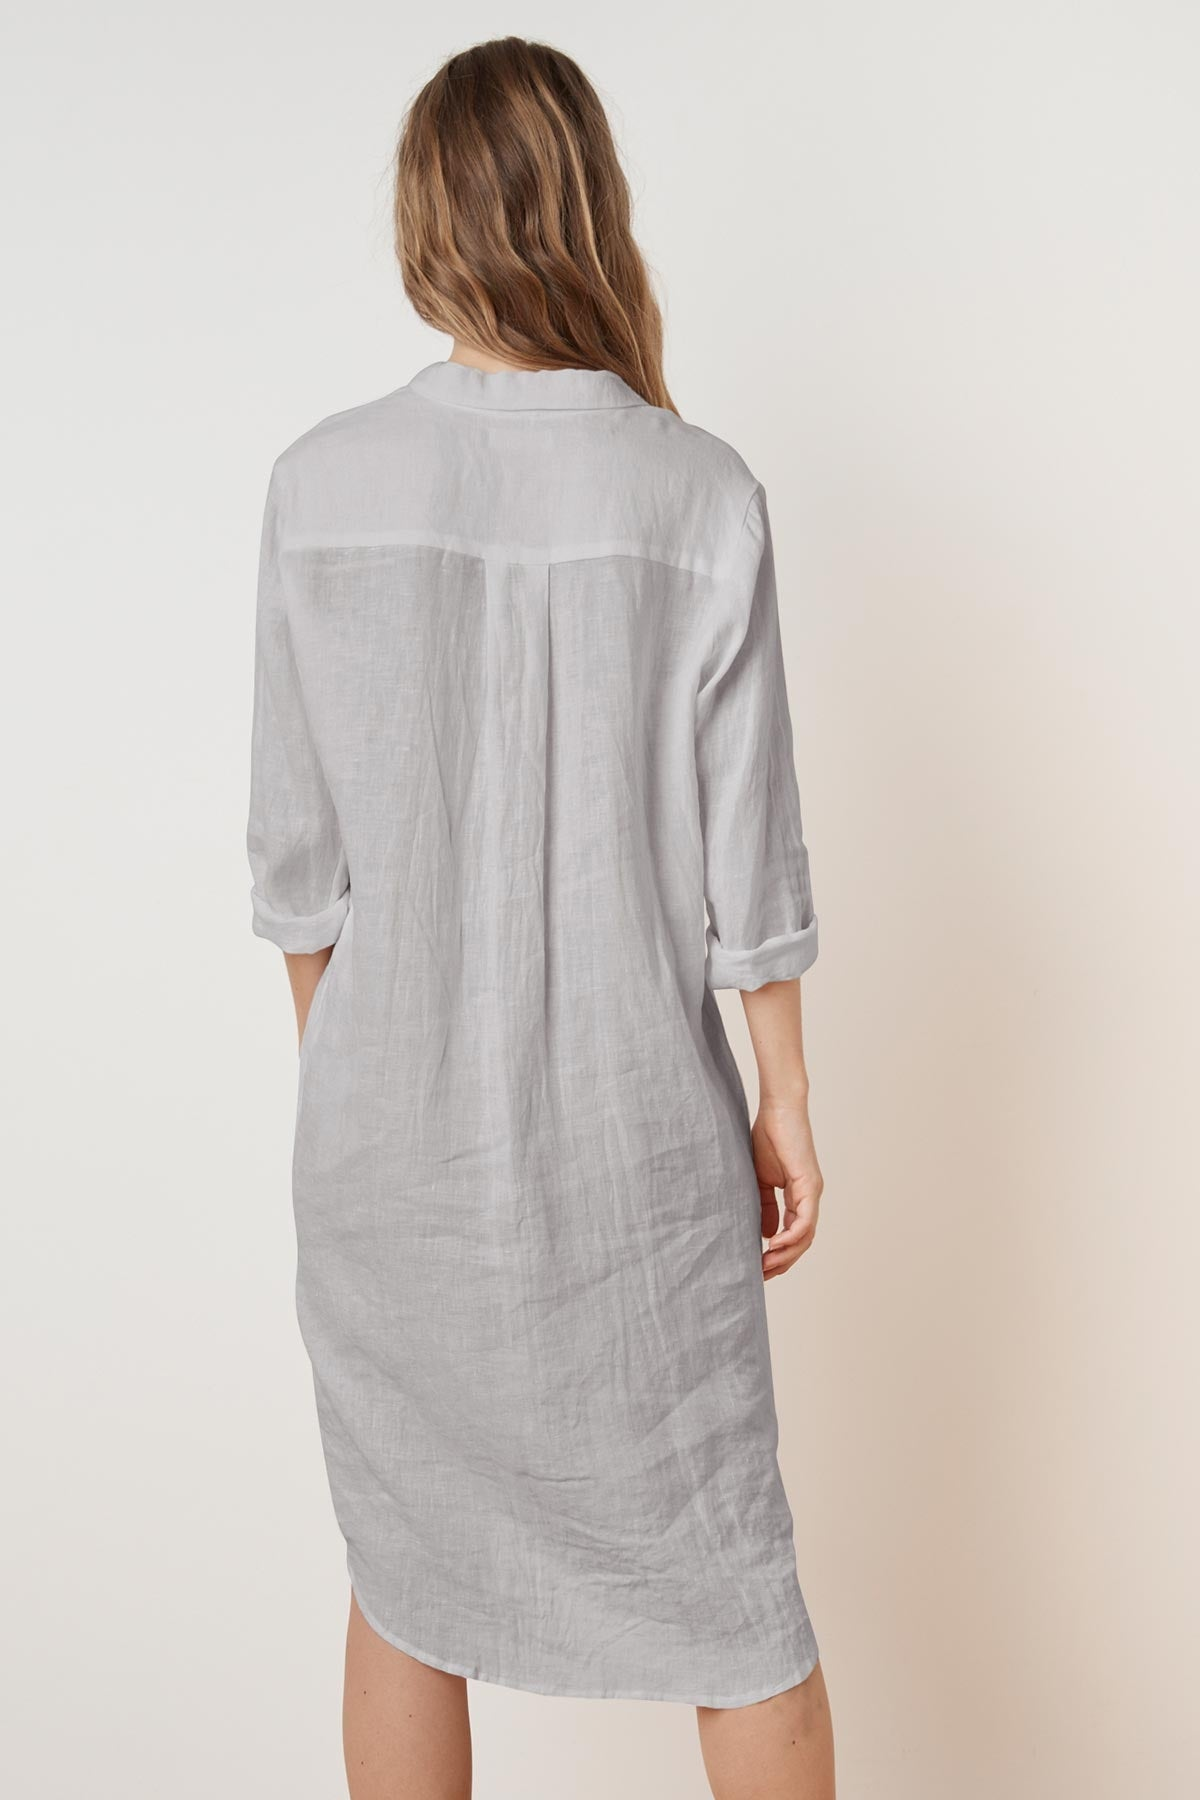 NANDY WOVEN LINEN SHIRT DRESS